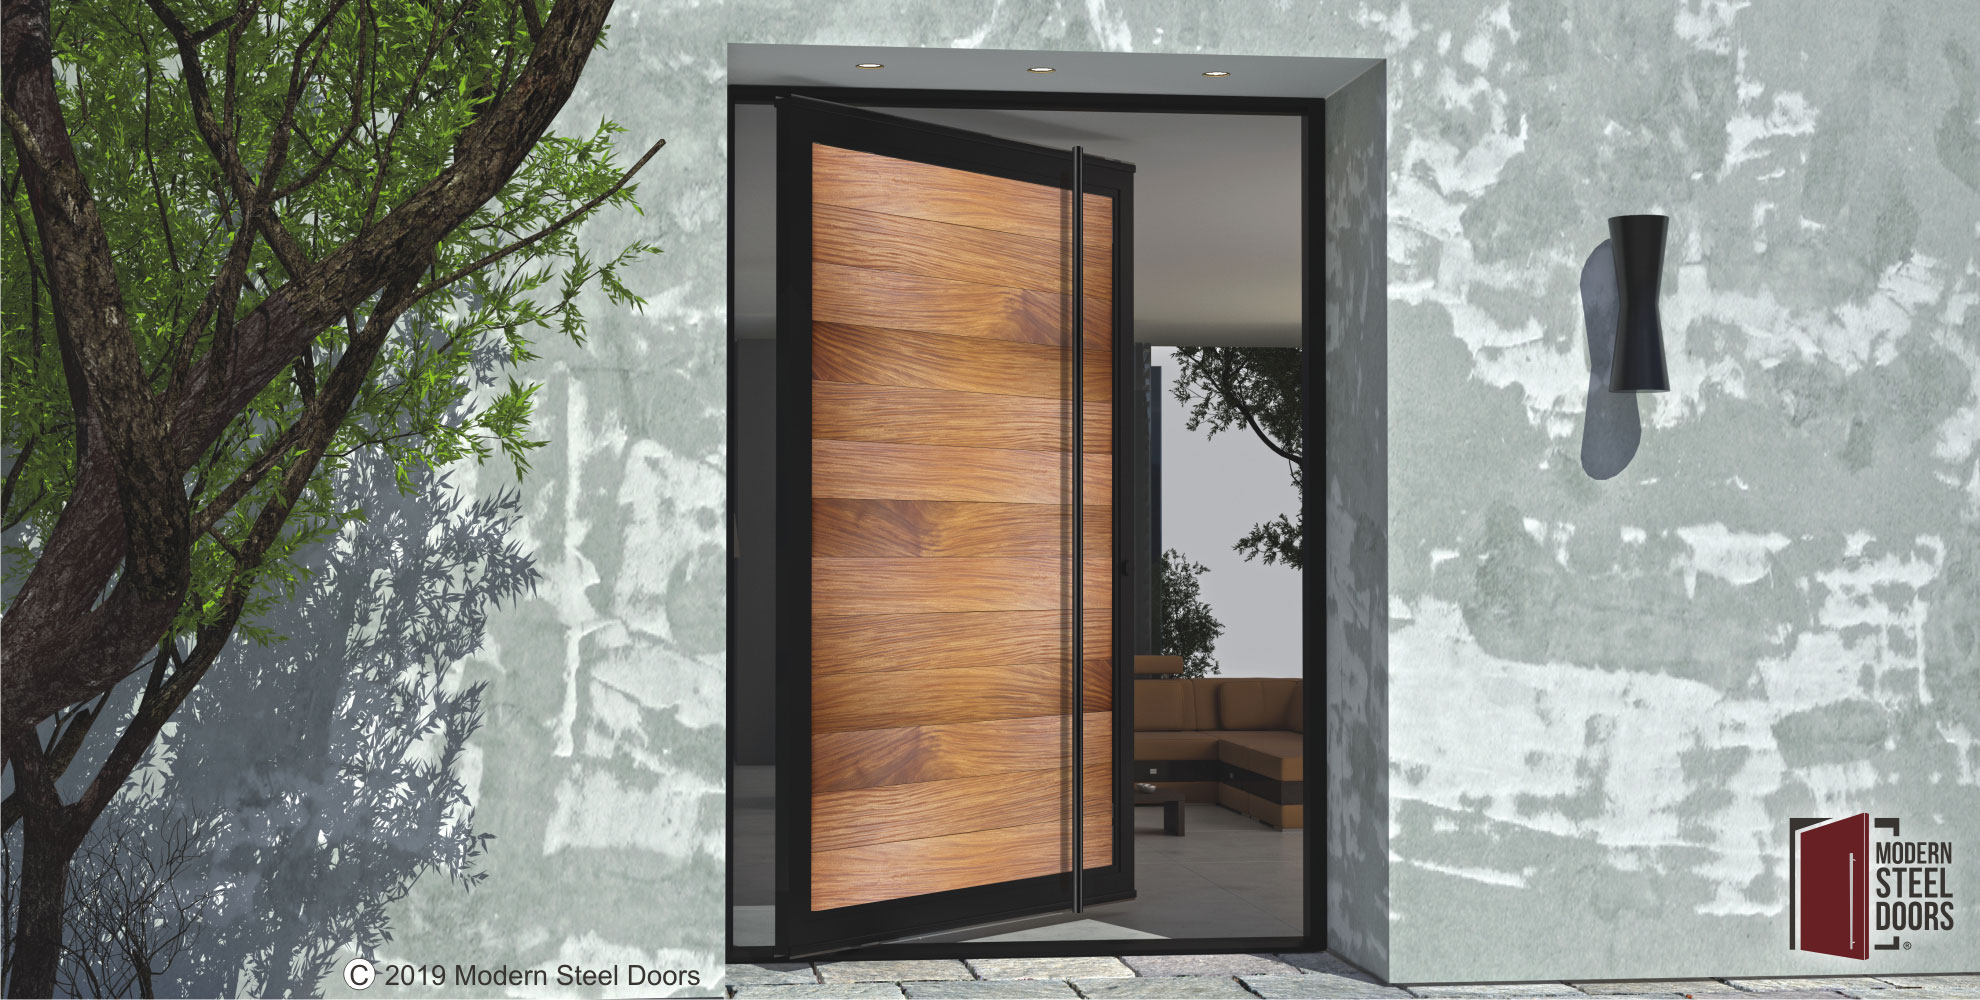 TEAK-FULL-VIEW-SINGLE-DOOR-WITH-MATCHING-ROUND-DOOR-LENGTH-PULLS